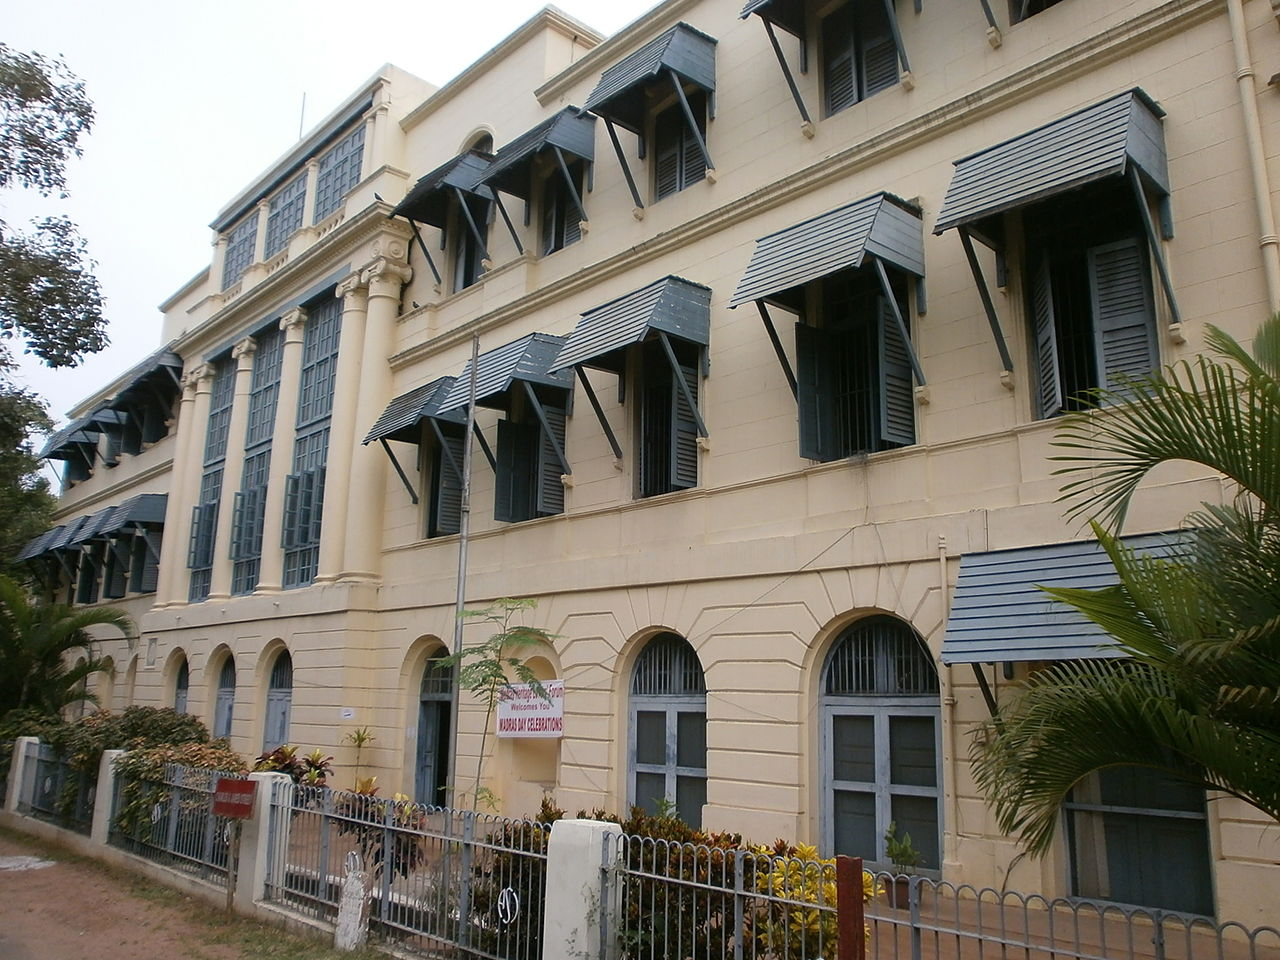 Amazing Fort In Tamil Nadu-Fort St. George in Chennai